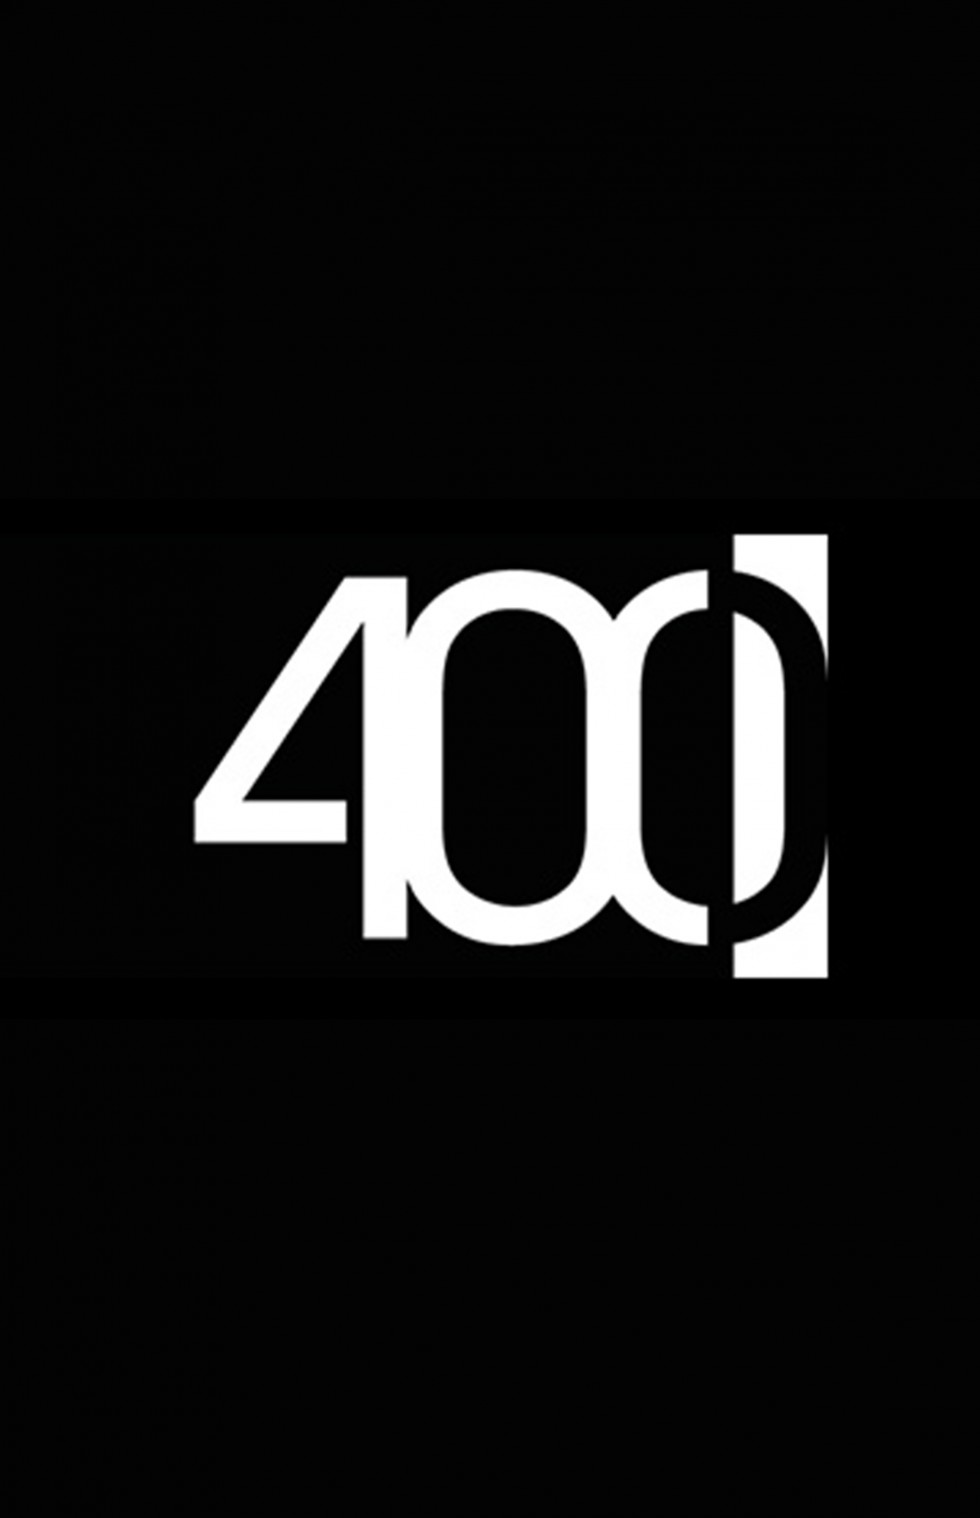 le400-first